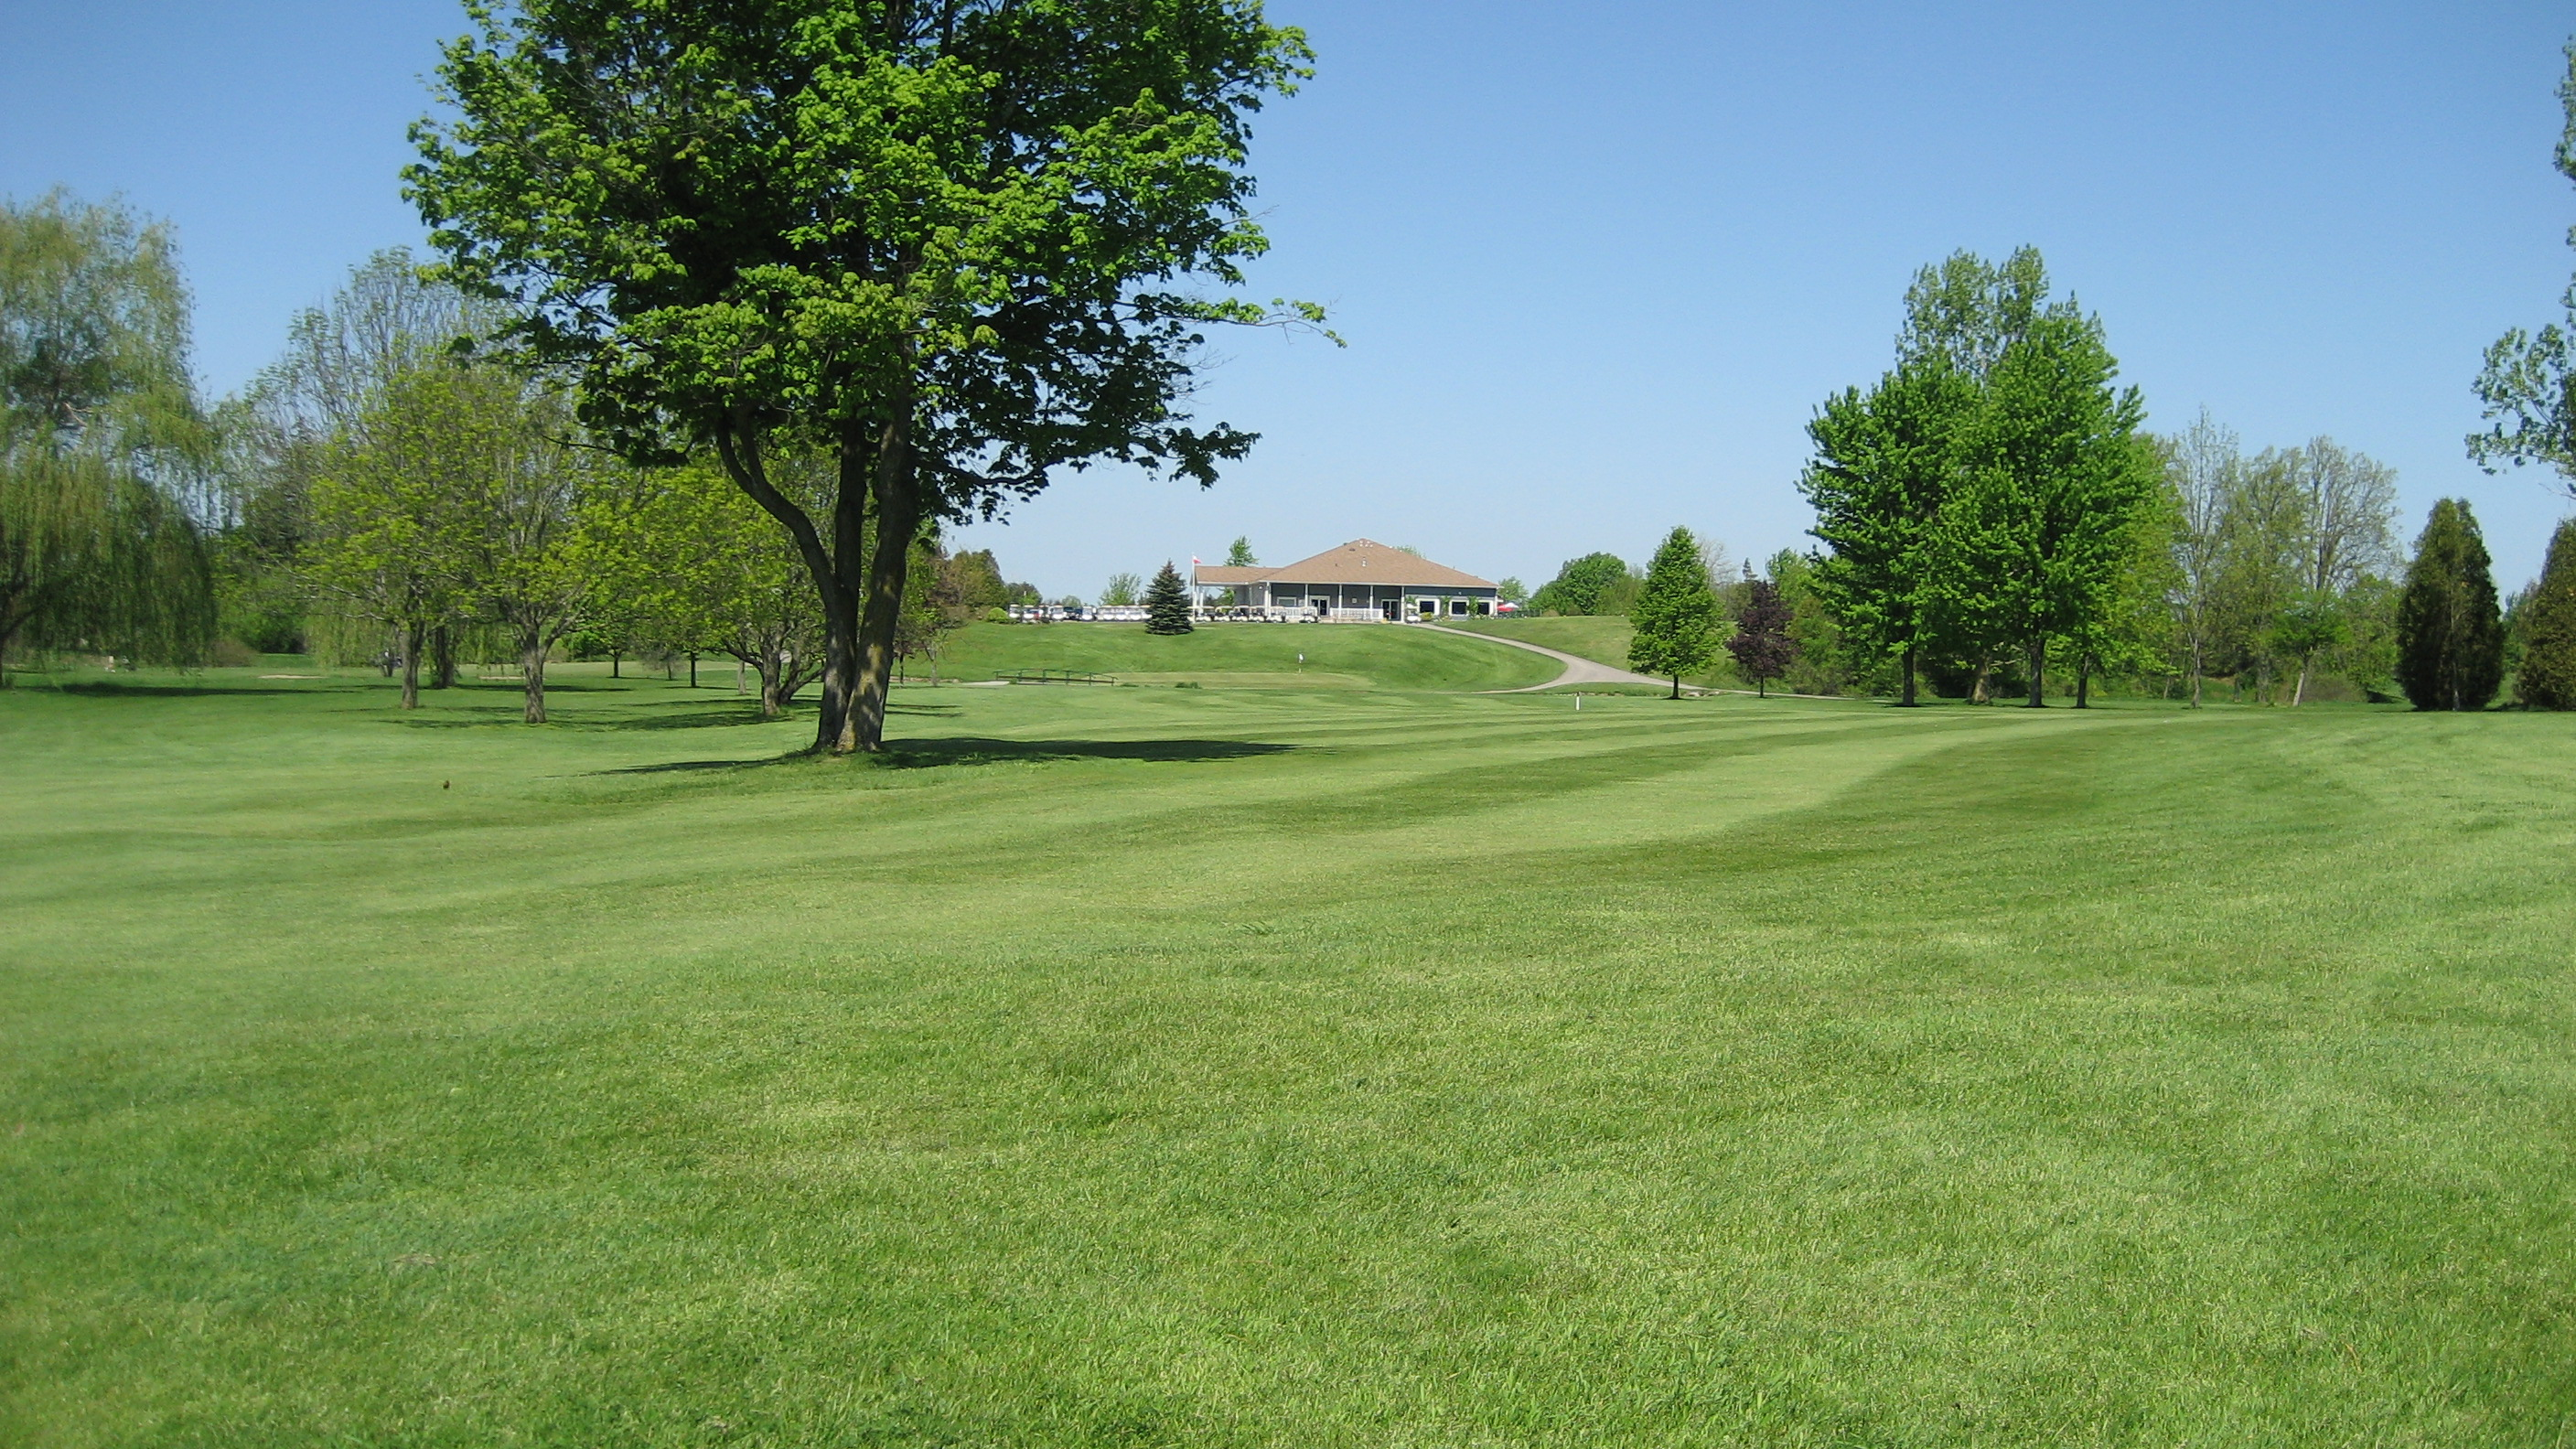 Golf course discount coupons